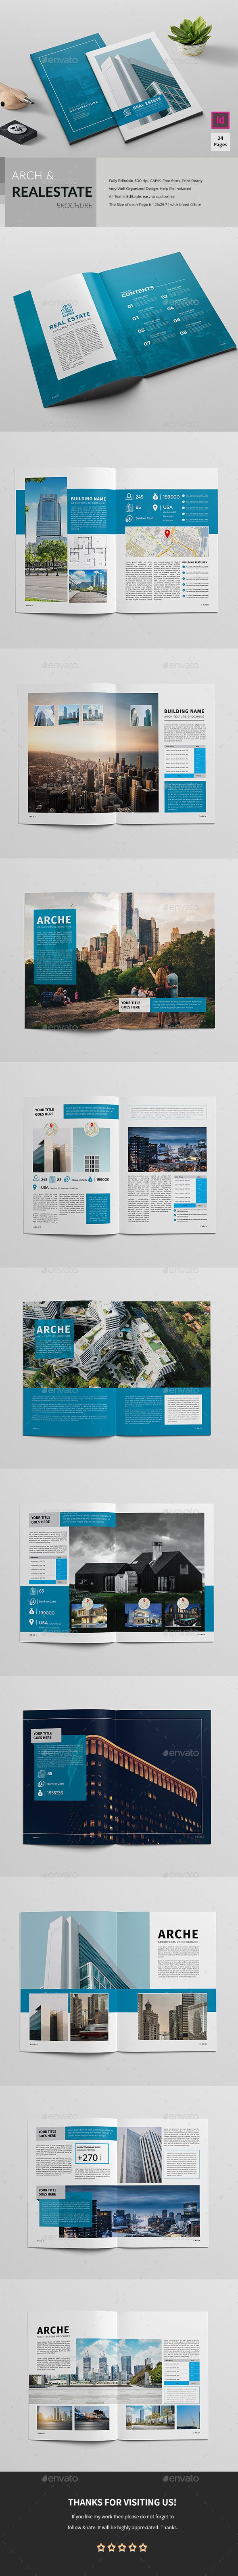 Real Estate / Architecture Brochure Template InDesign INDD